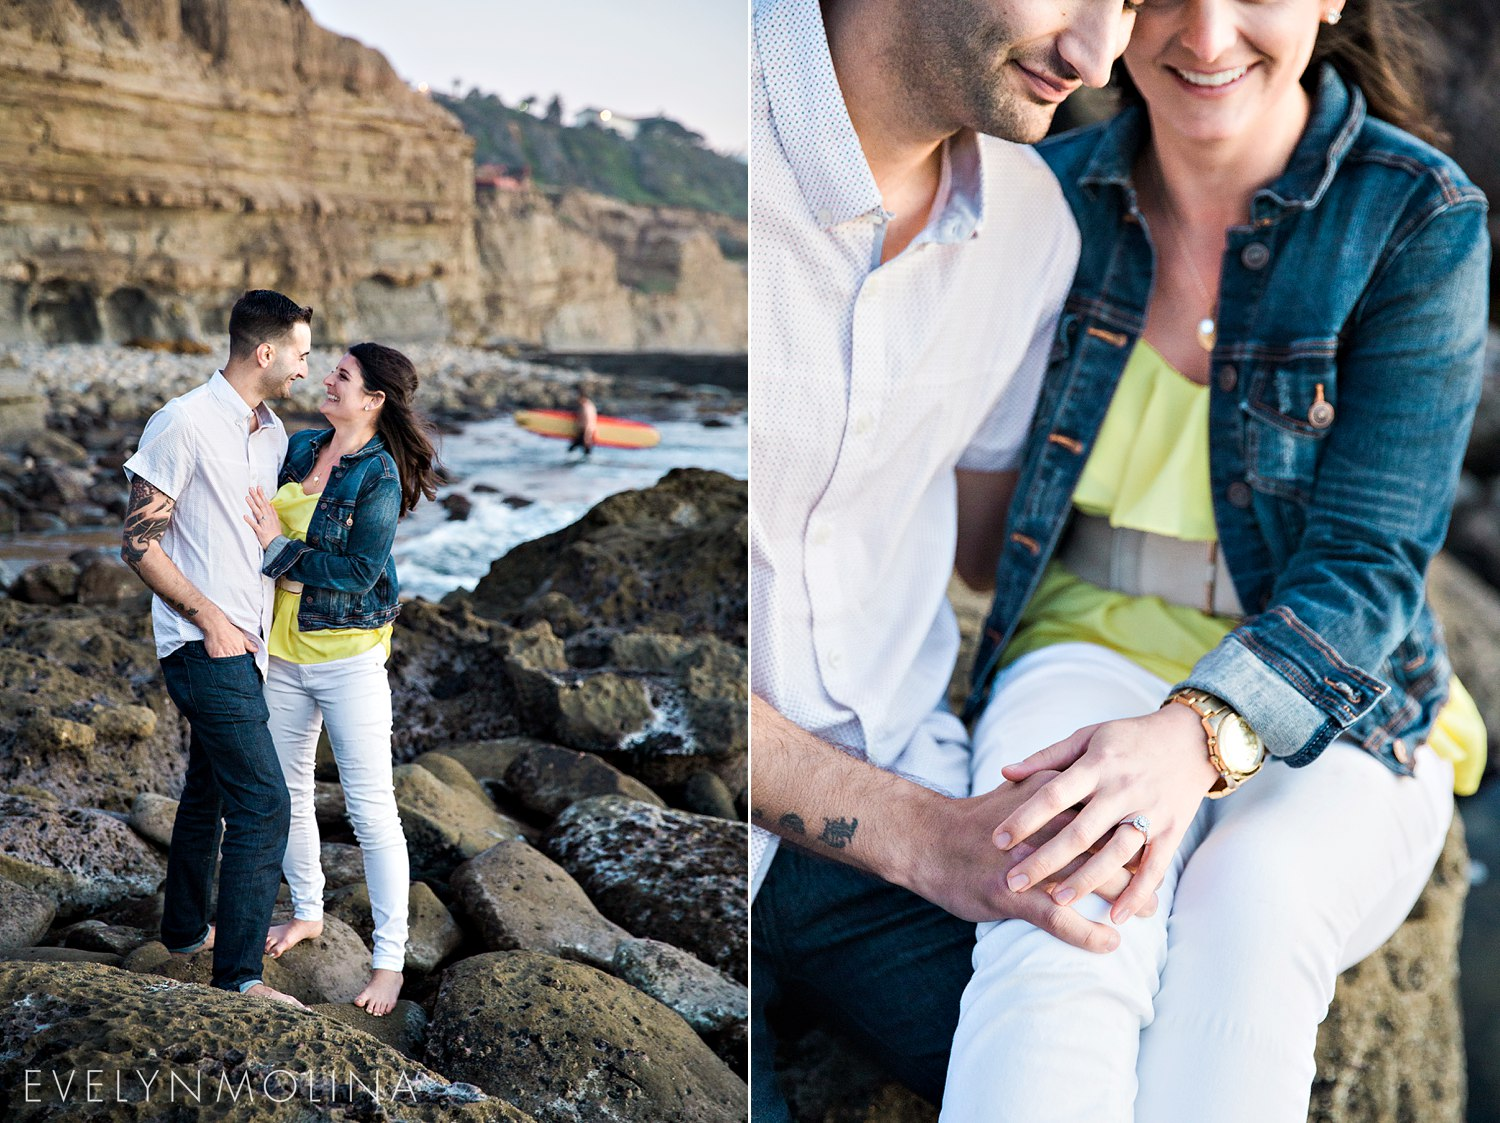 Sunset Cliffs Engagement Session - Carly and Alex - Evelyn Molina Photography_0031.jpg